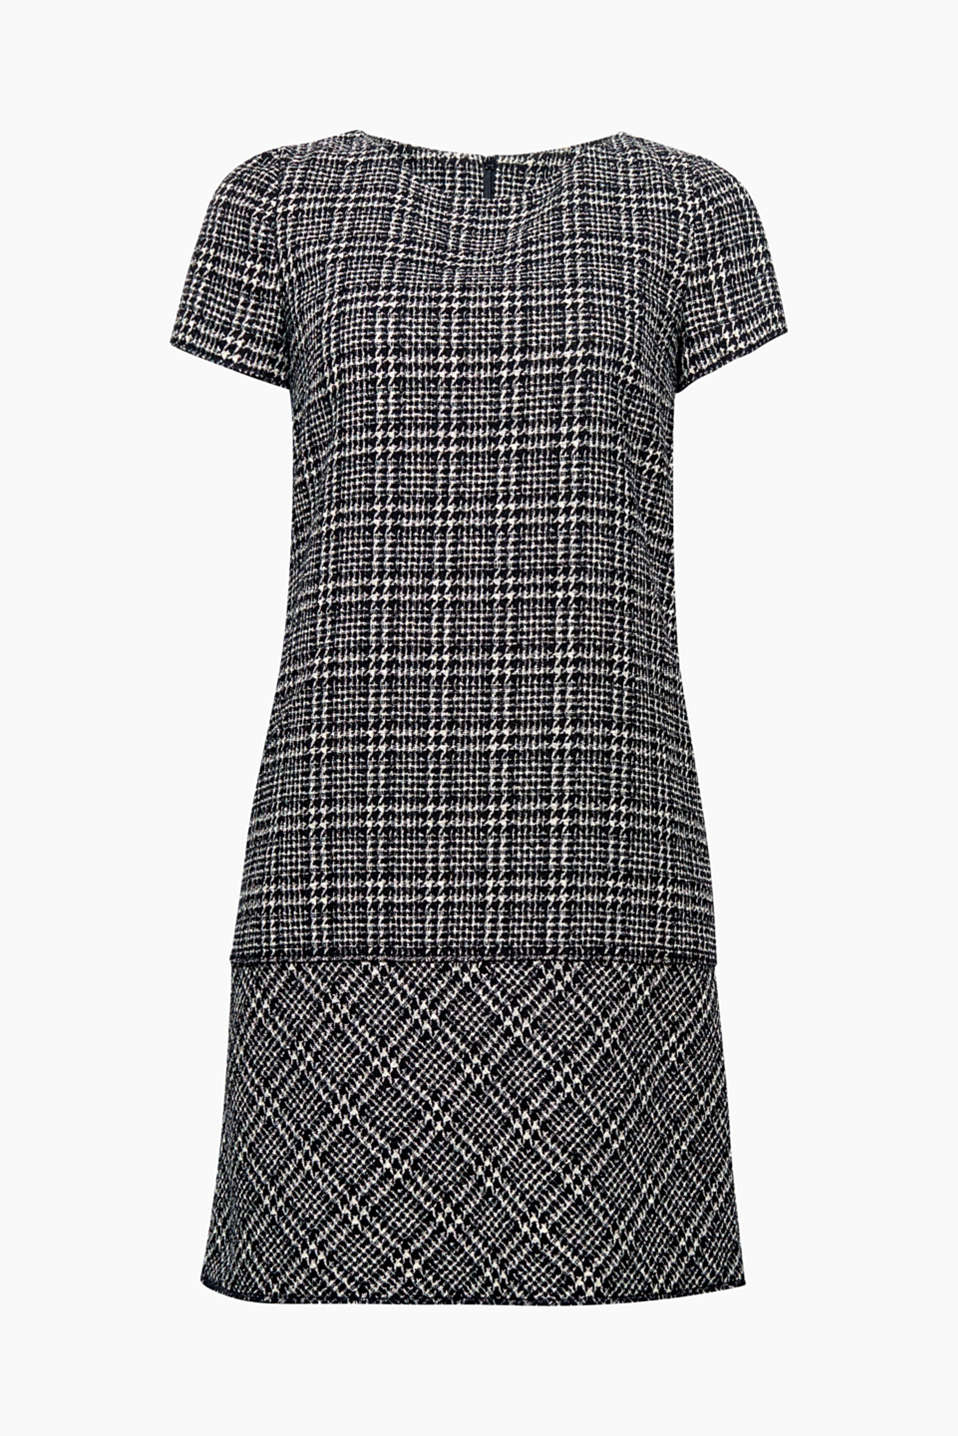 We love retro: A classic houndstooth pattern turns into all-over checks on the textured fabric of this fitted dress!